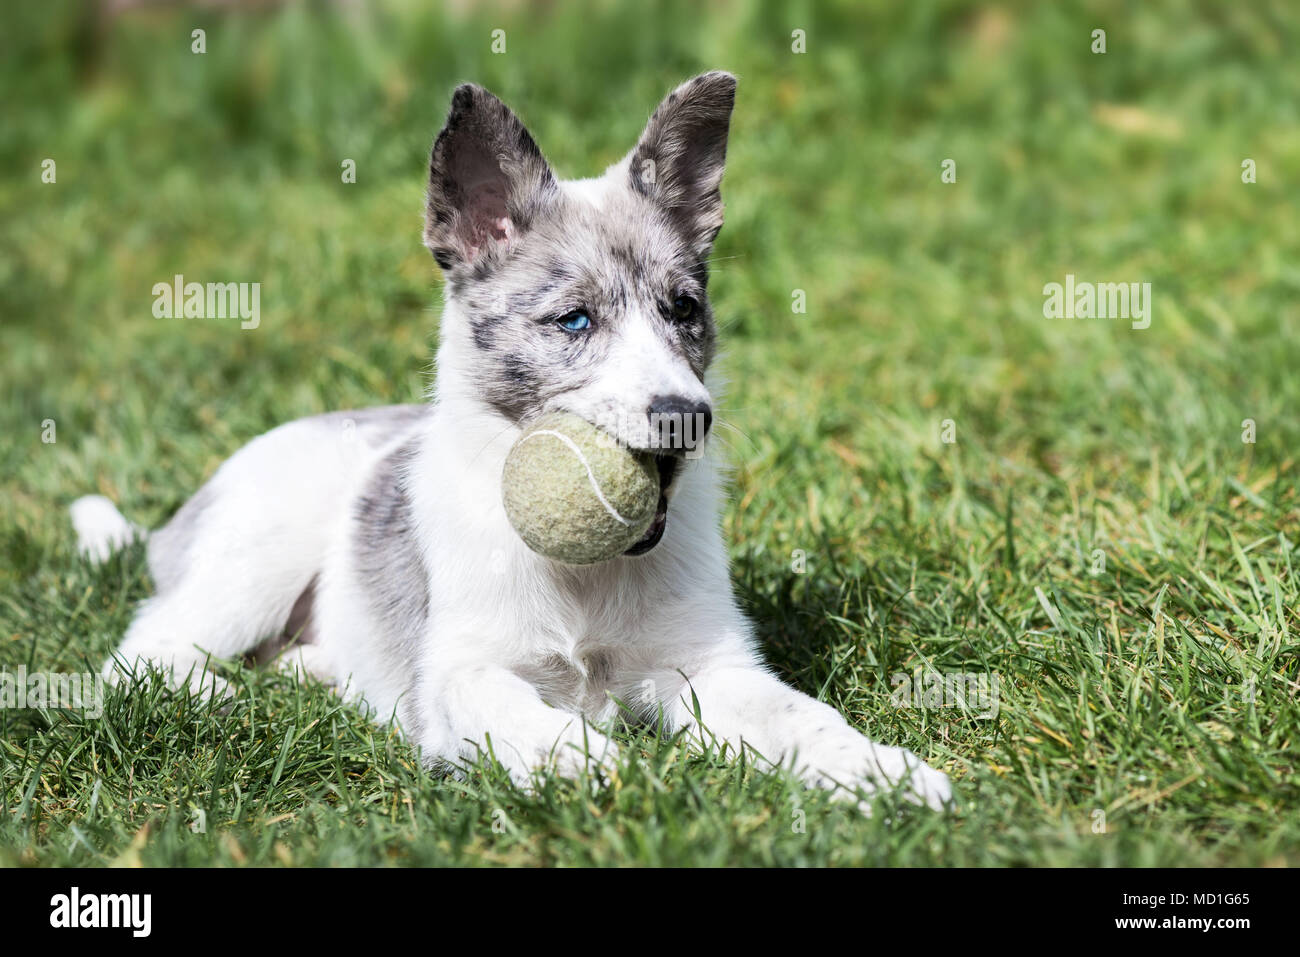 Puppy of bordercollie holding a tennis ball in the mouth - Stock Image